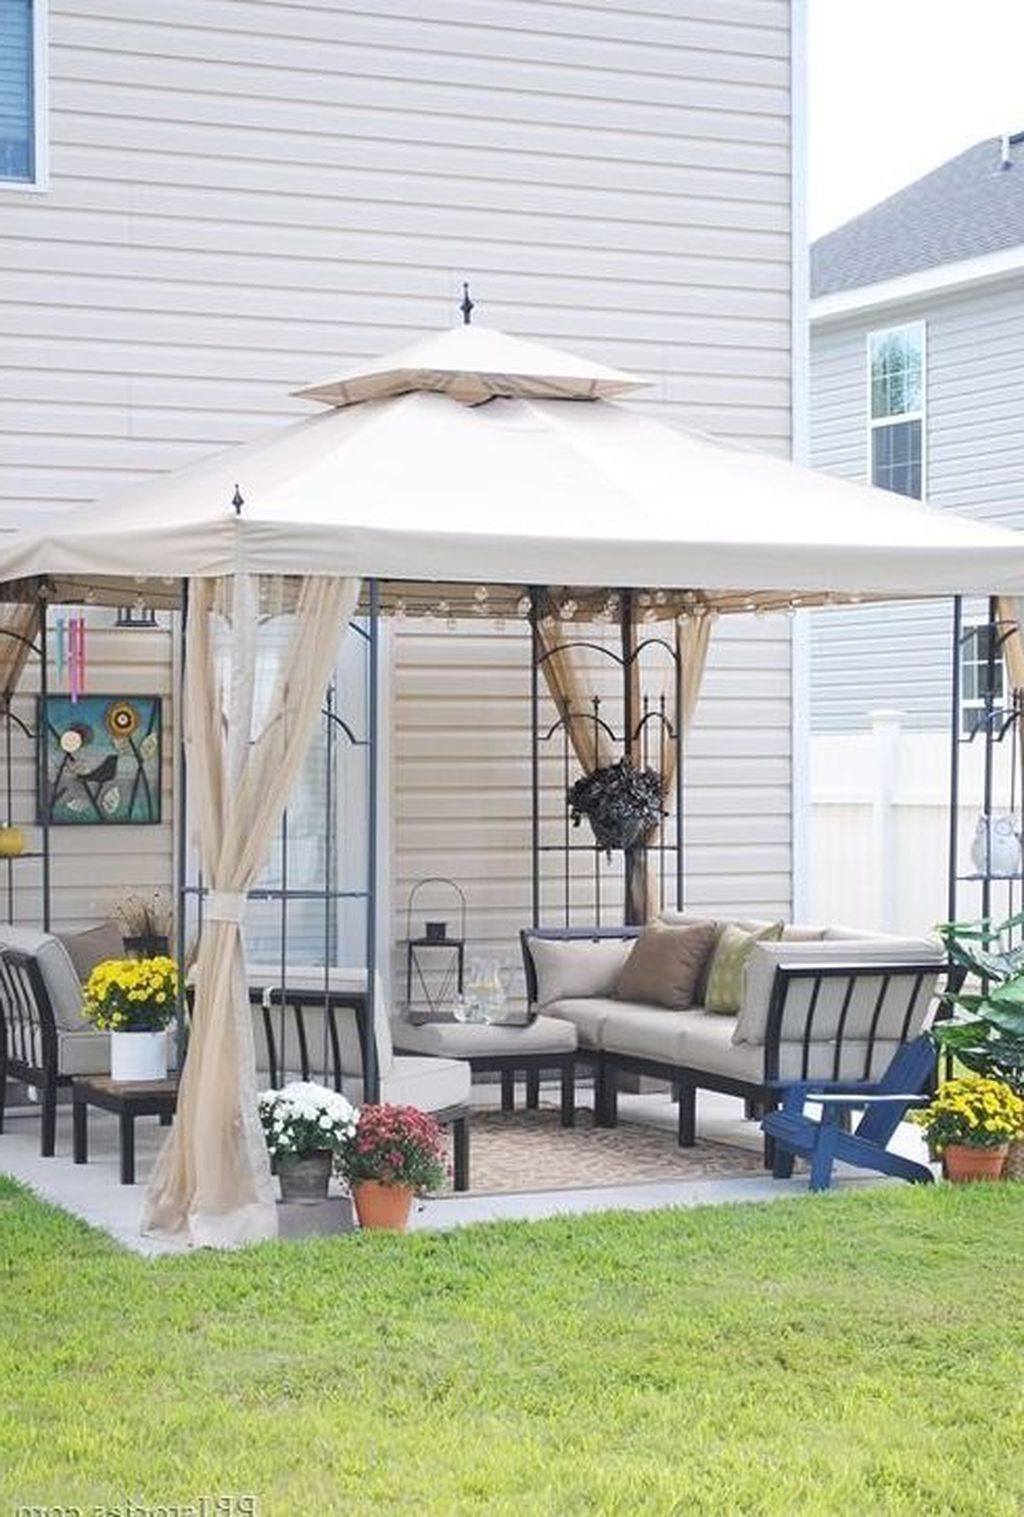 20+ Beautiful Small Backyard Makeover S Ideas On A Budget With Current A4 Ft Cedar Pergola Swings (View 3 of 30)